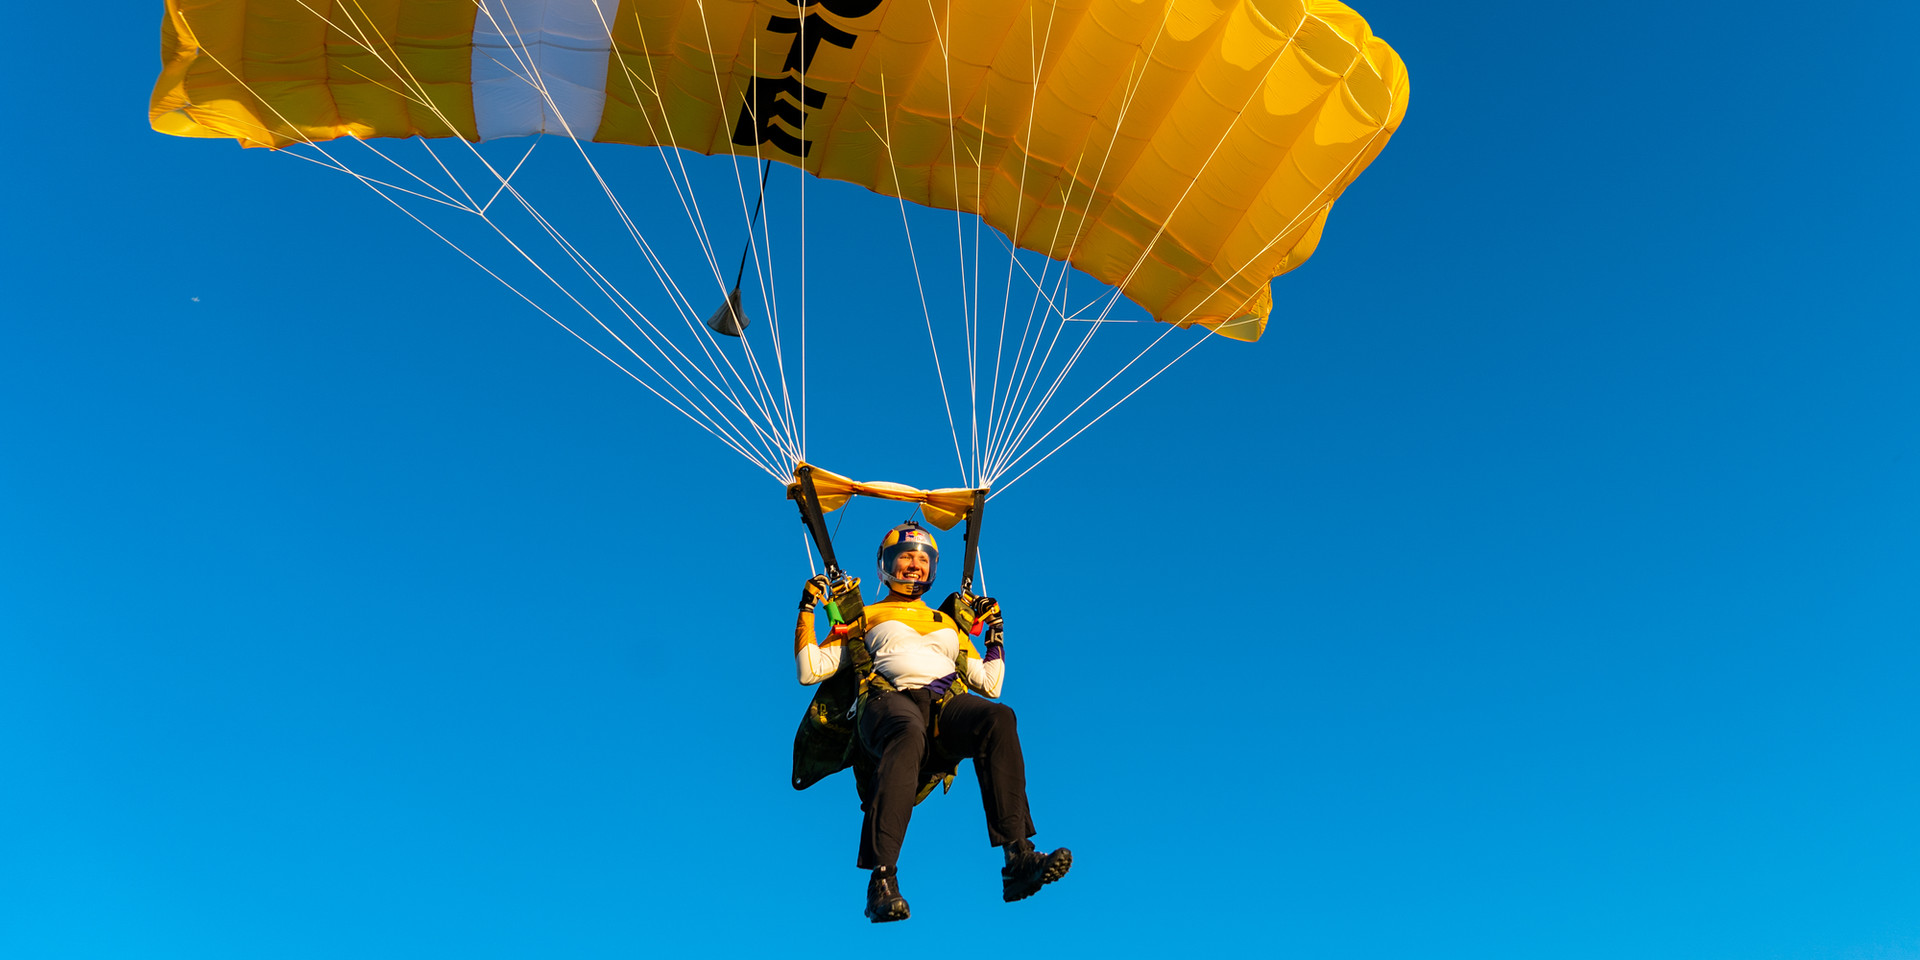 HighlightSkydiving_DSquared02.jpg